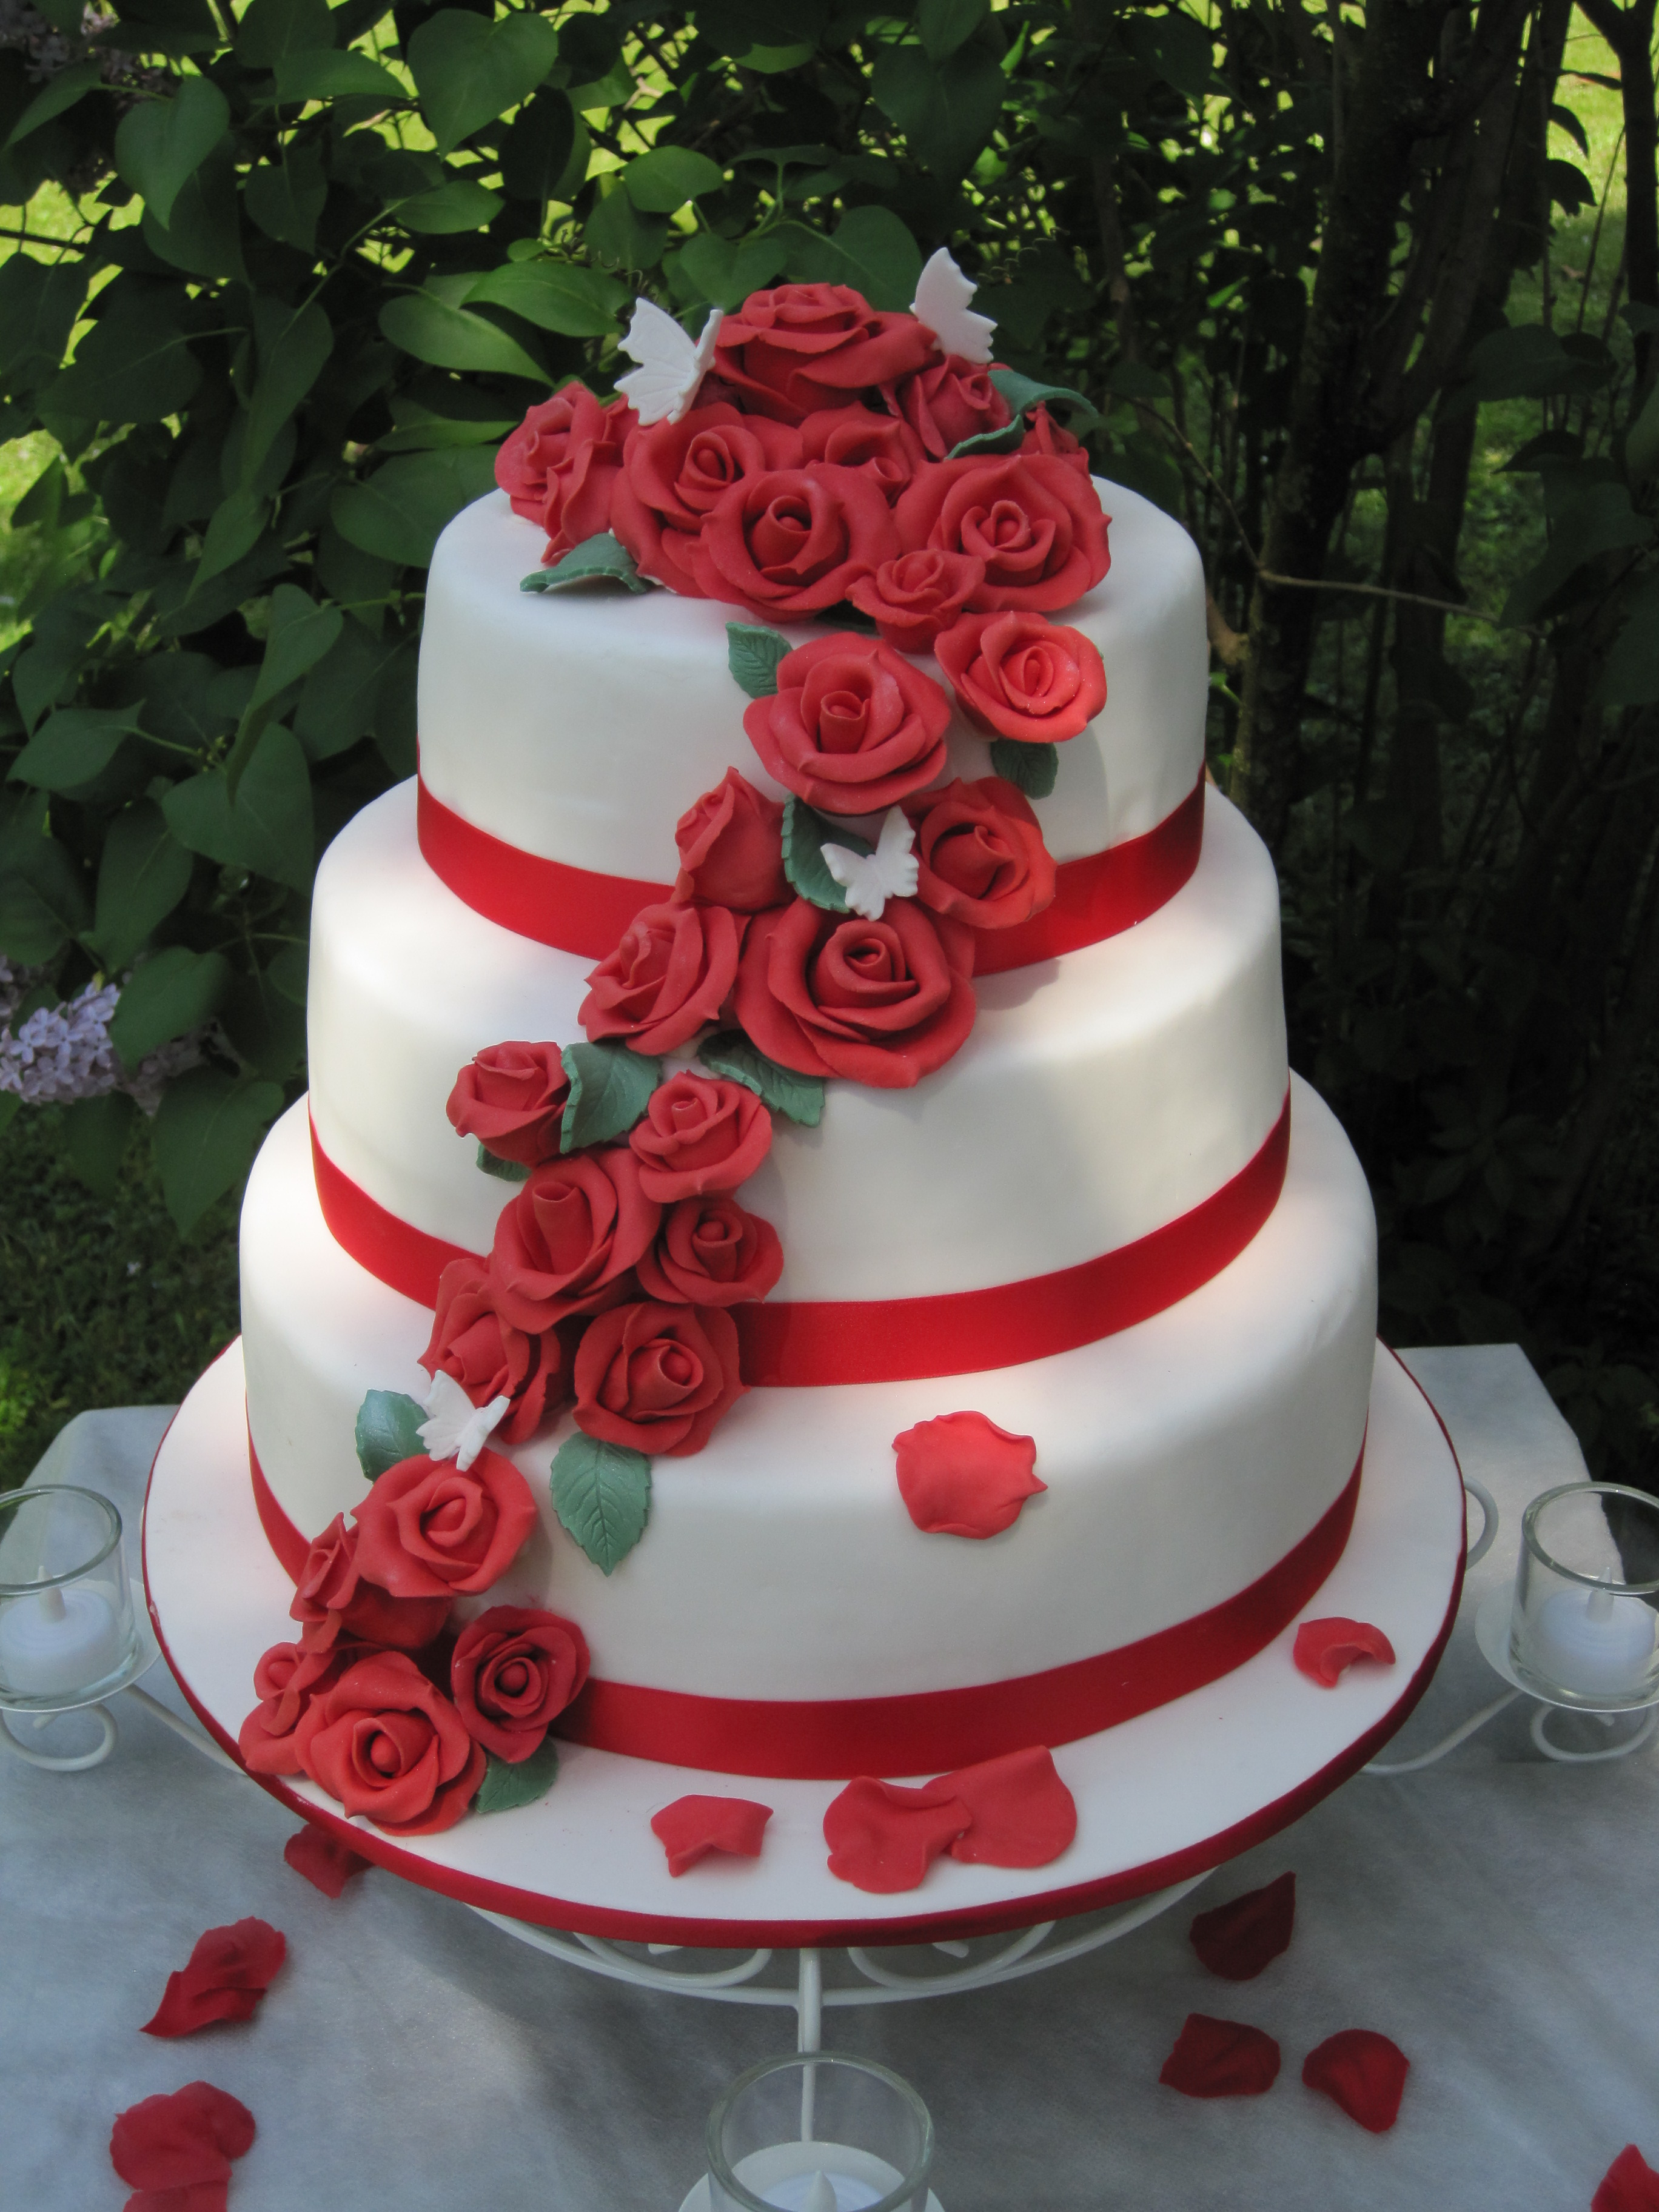 pictures of wedding cakes with red roses auguri lucetta auguri fabiana buon compleanno 18477